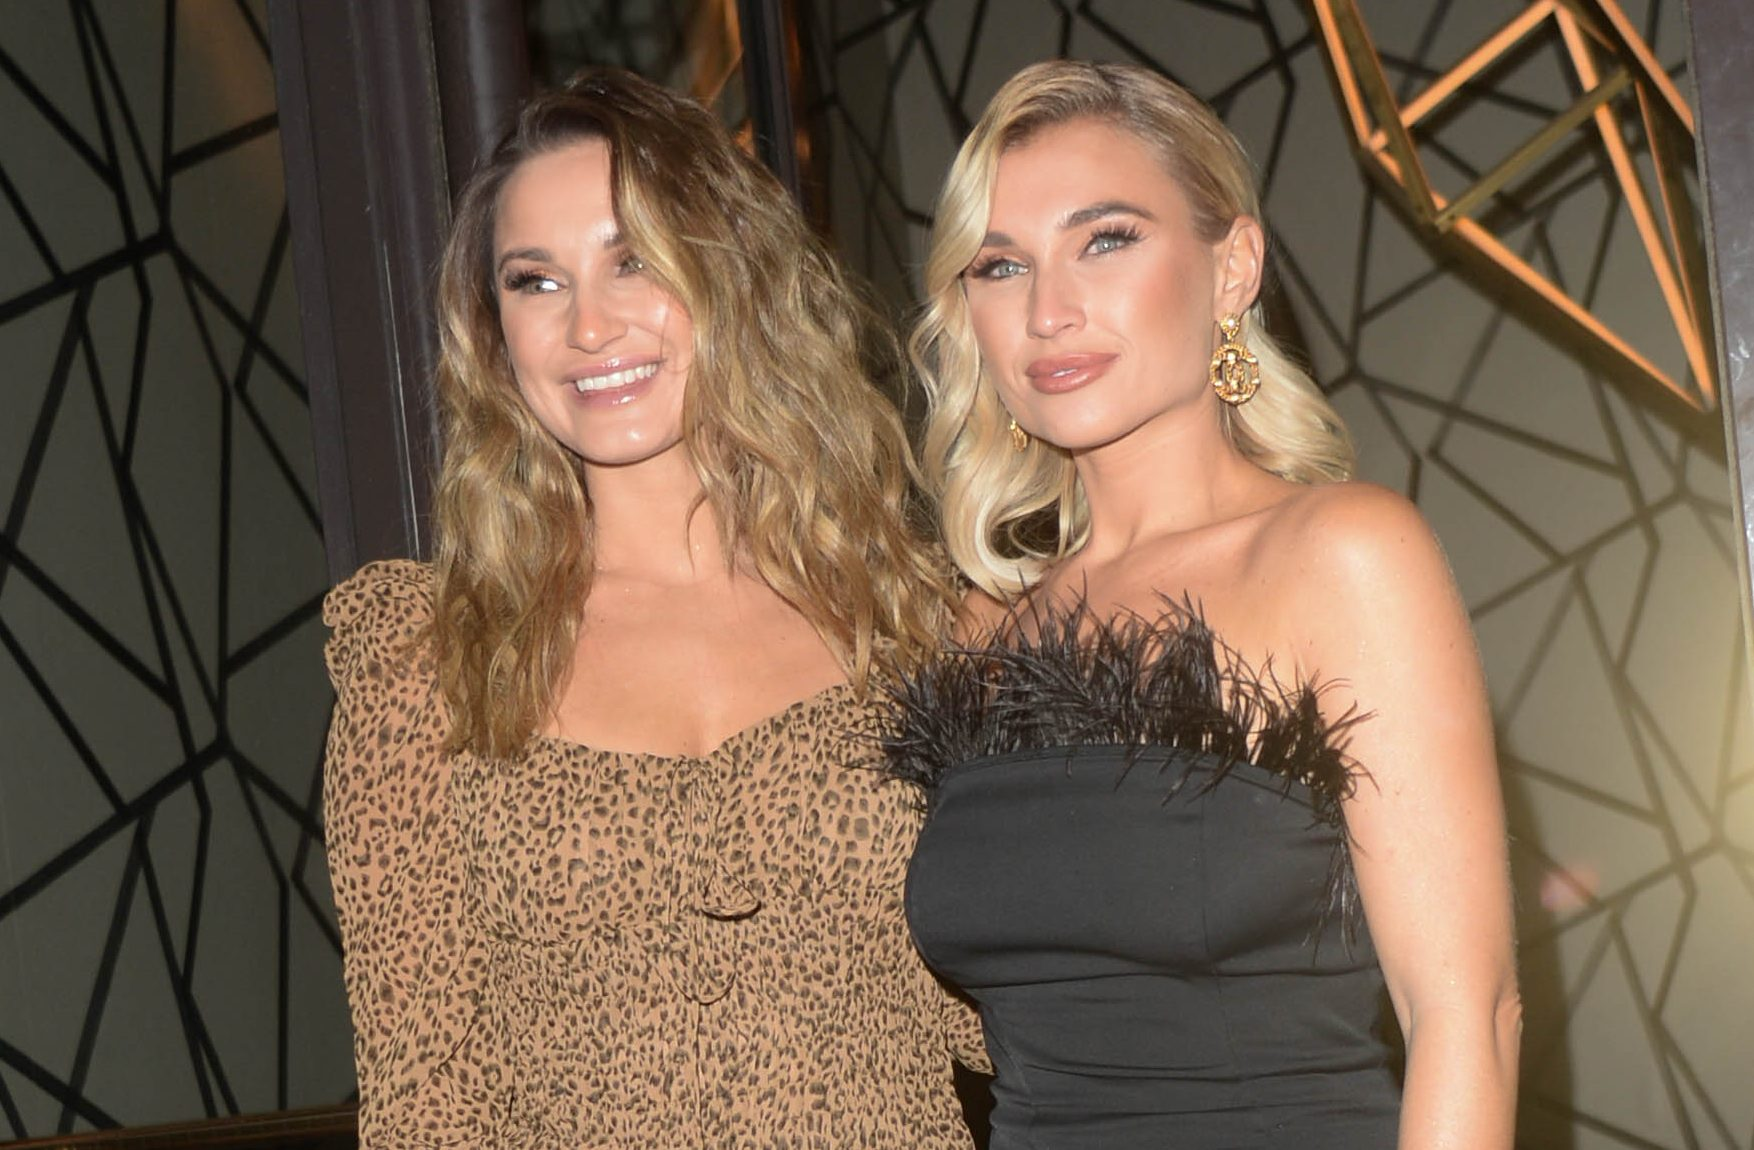 TOWIE's Sam and Billie Faiers divide opinion with NYC horse and carriage ride